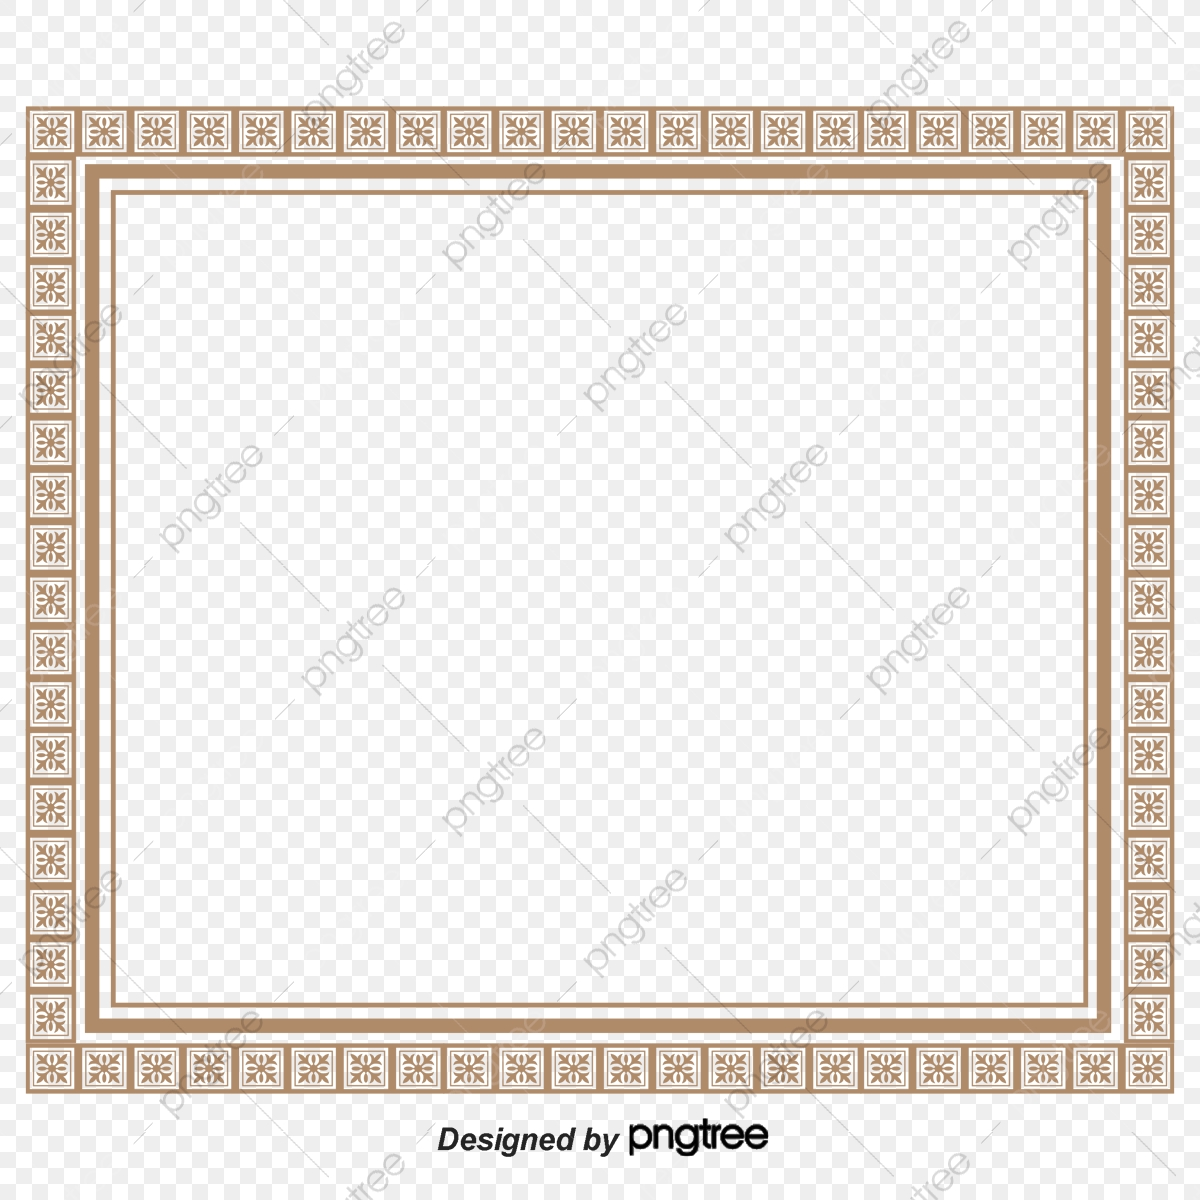 certificate border png vector psd and clipart with transparent background for free download pngtree https pngtree com freepng certificate border design 3331060 html